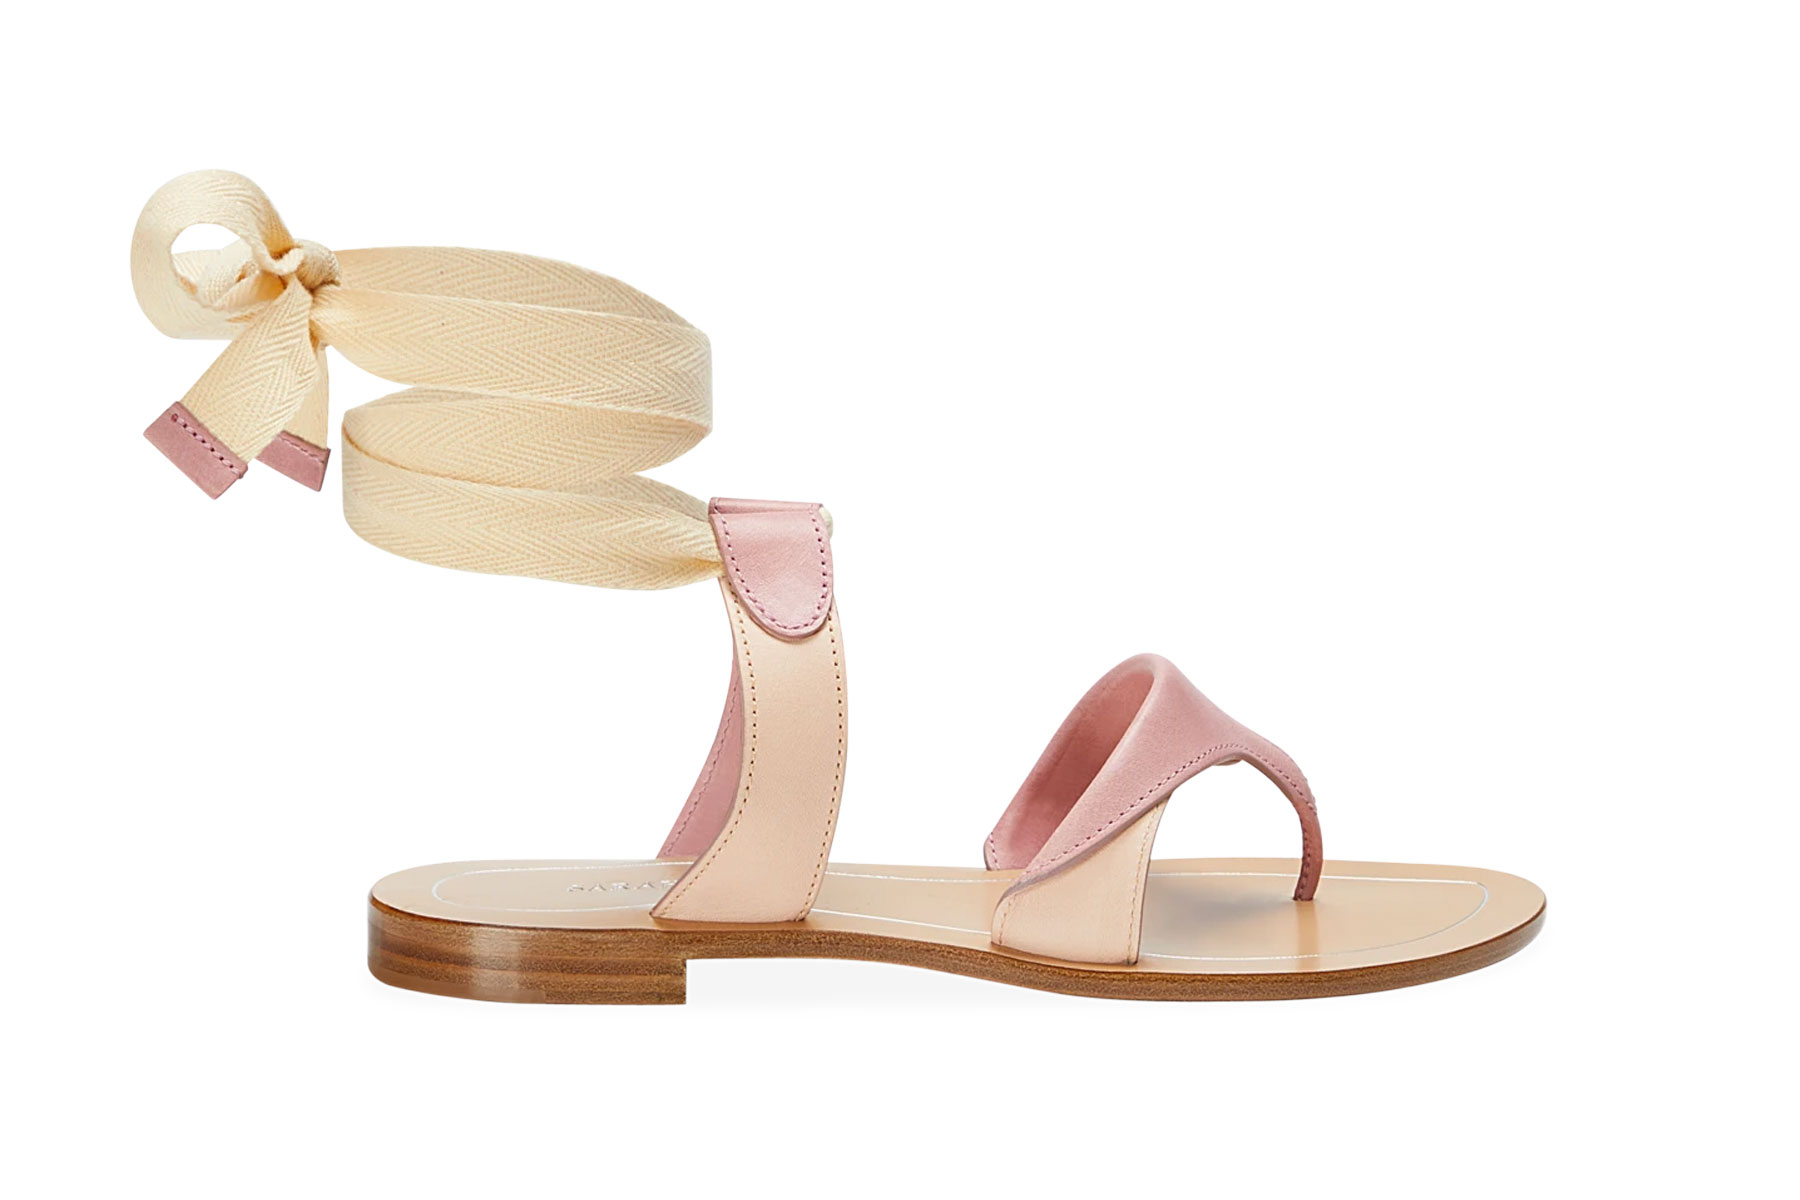 Pink and beige sandals